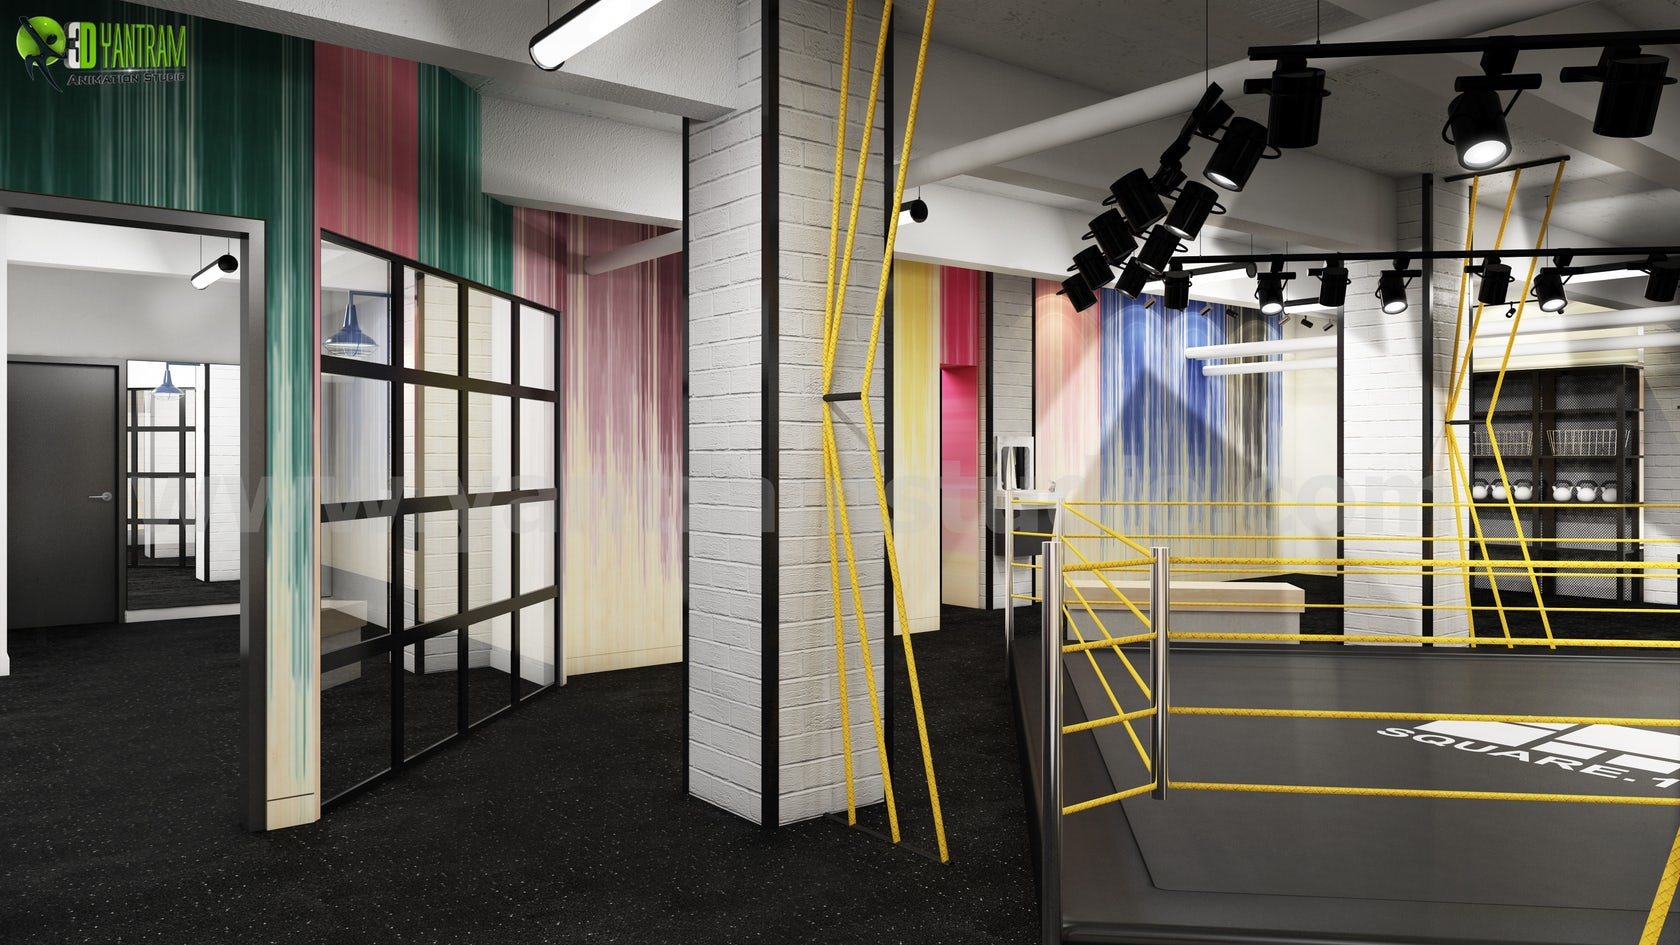 Fitness Motivation Gym Renderings Ideas from 3D Interior Designers of  Yantram - Boston, USA on Architizer